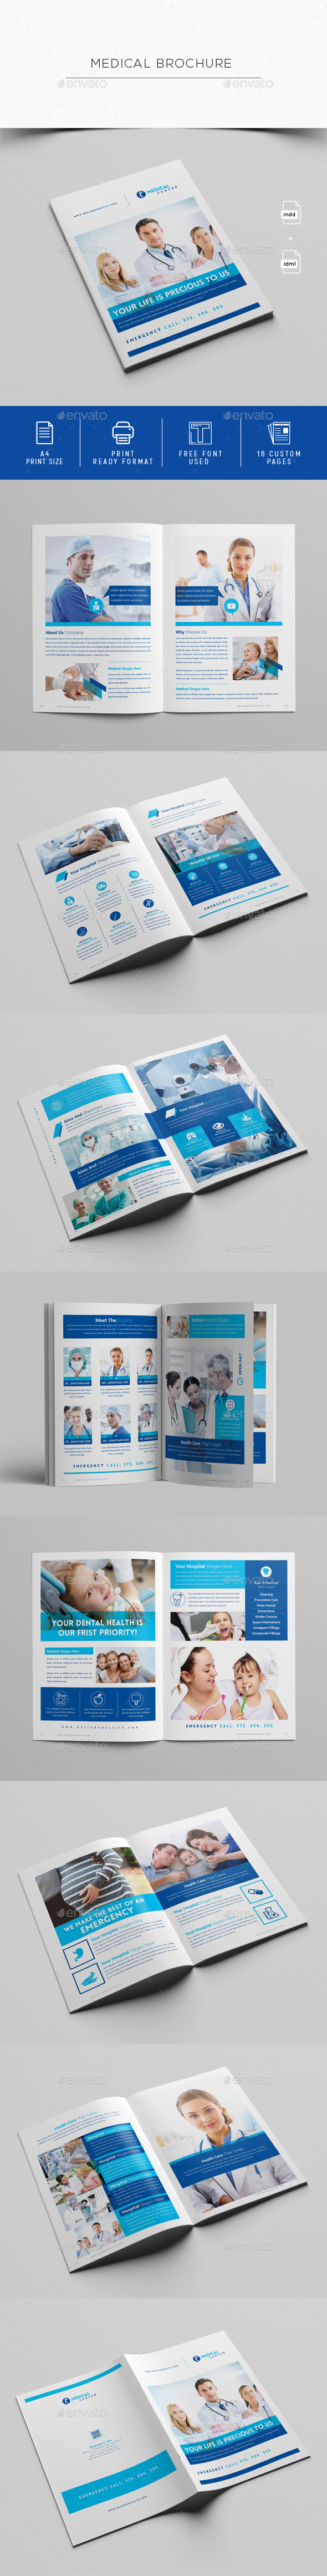 Medical Brochure Template - Informational Brochures